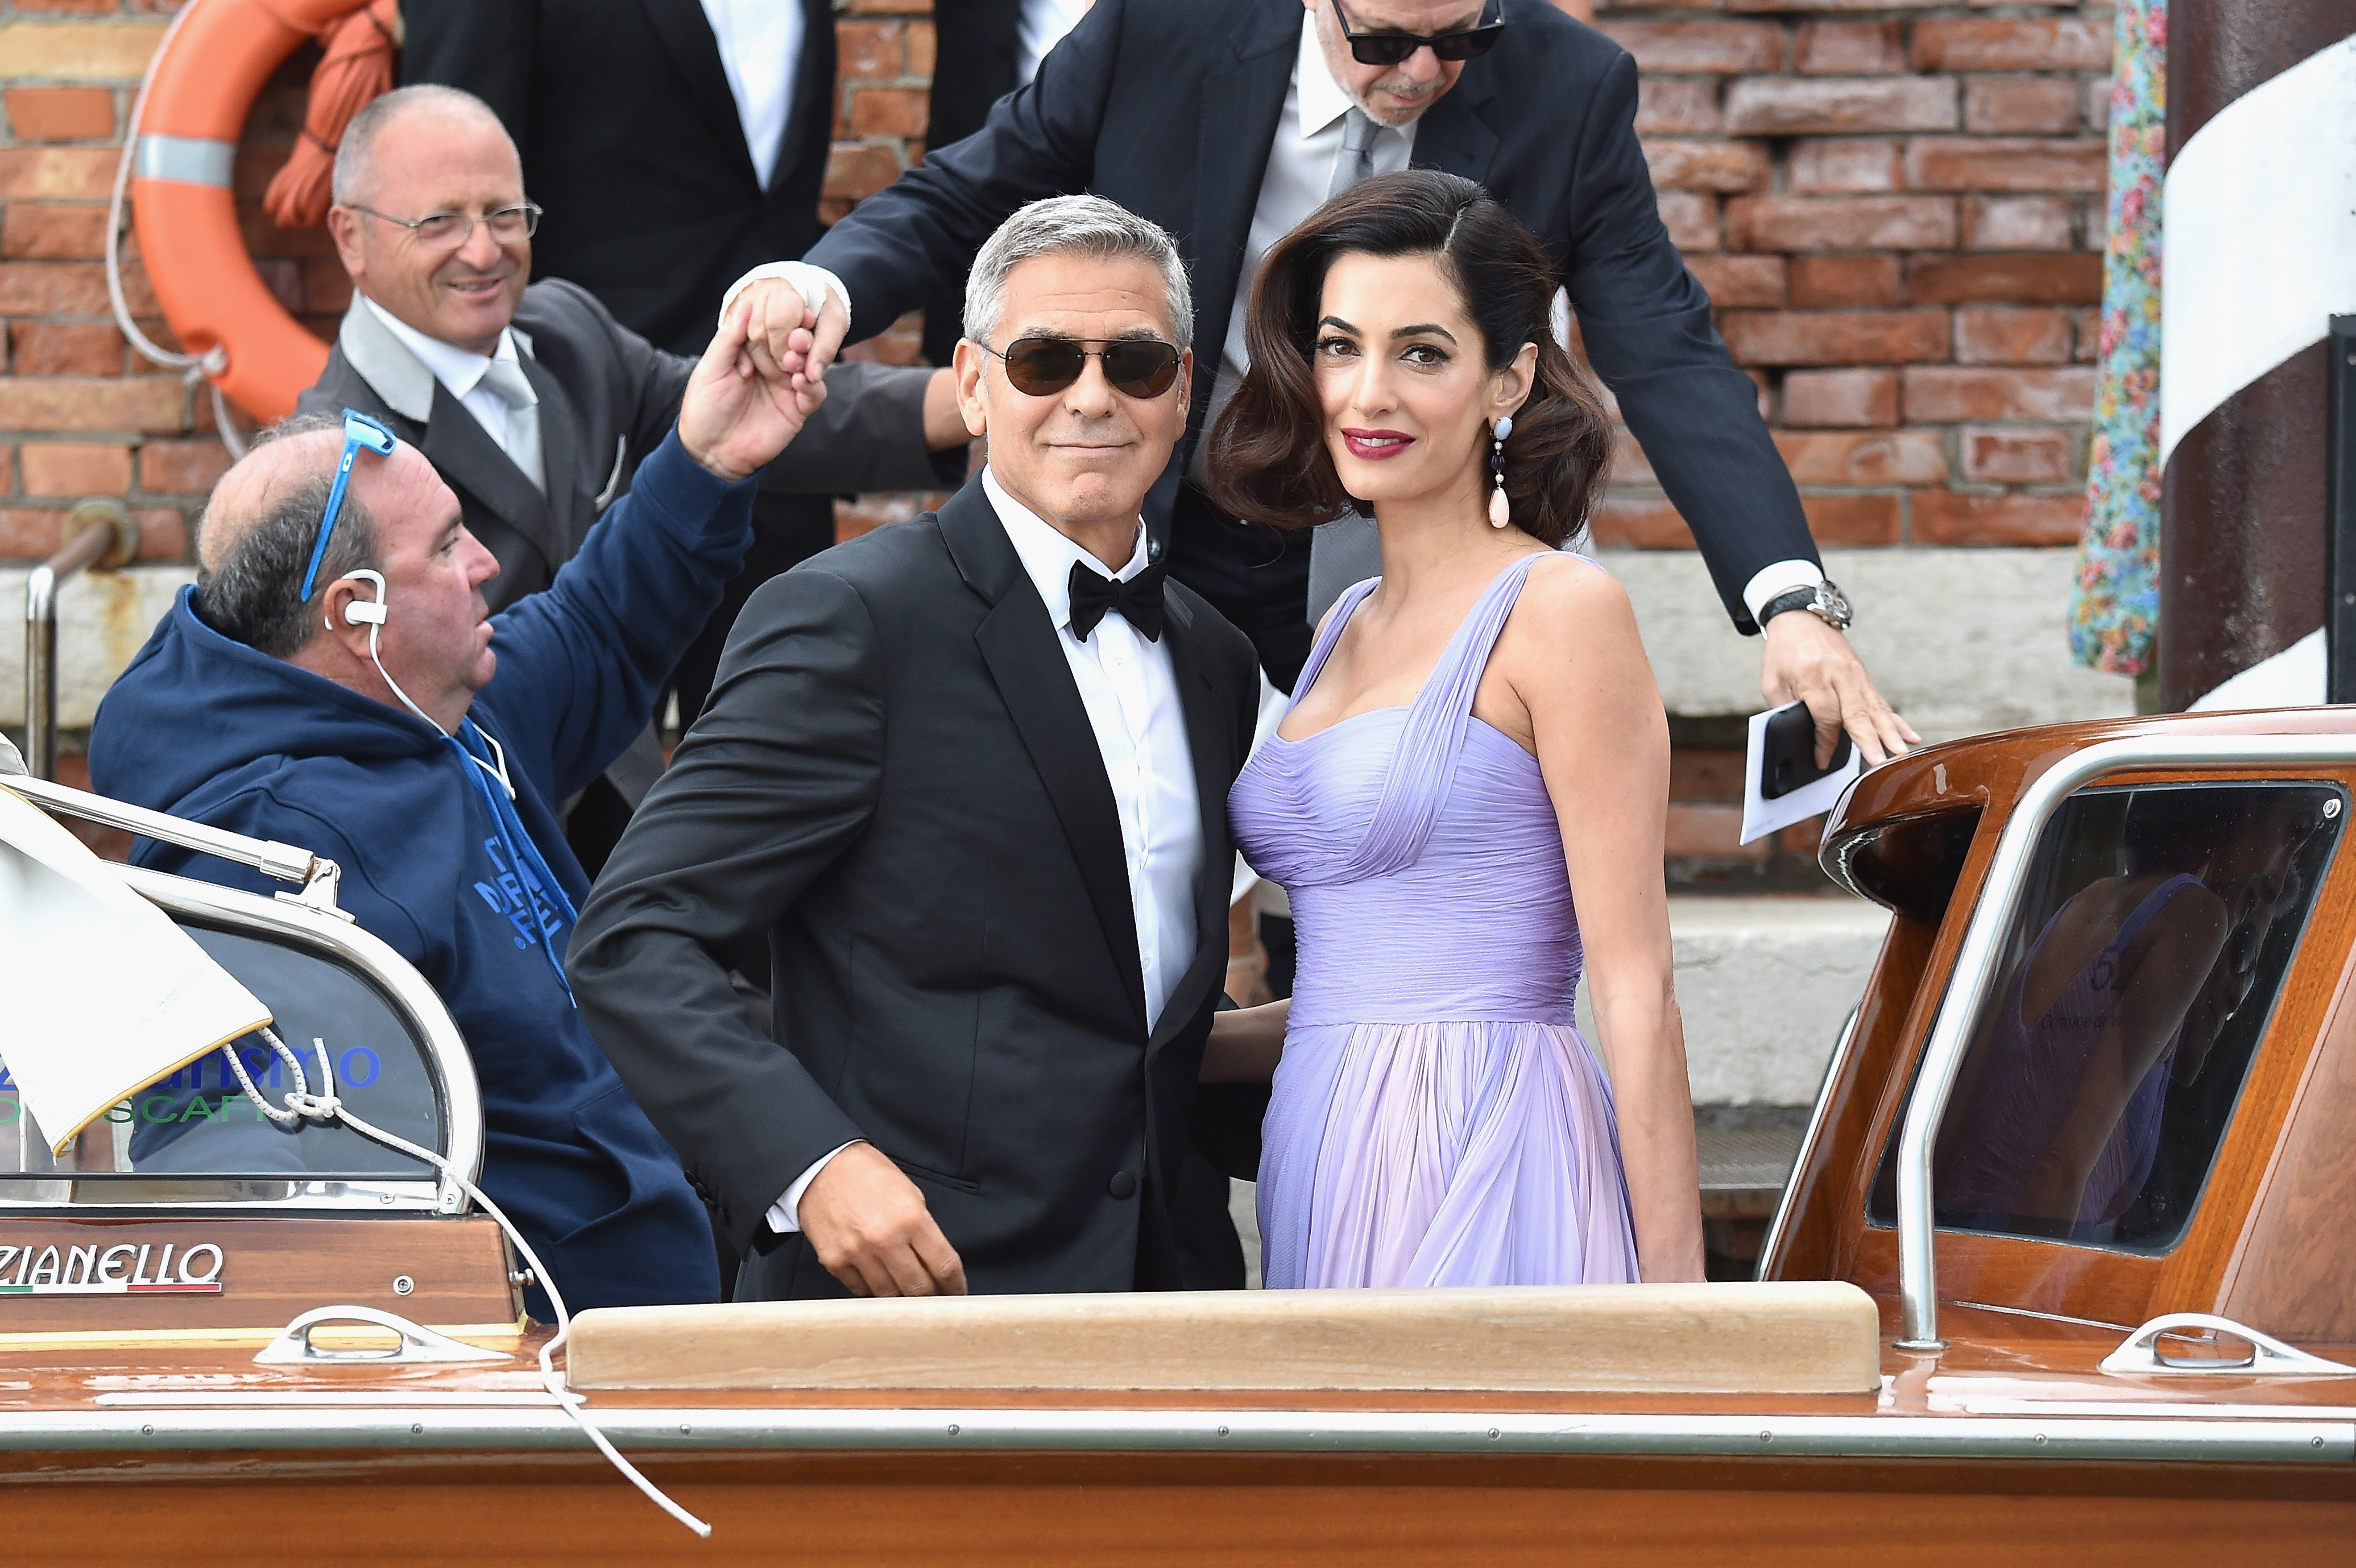 george_clooney_amal_clooney_GettyImages-841876124